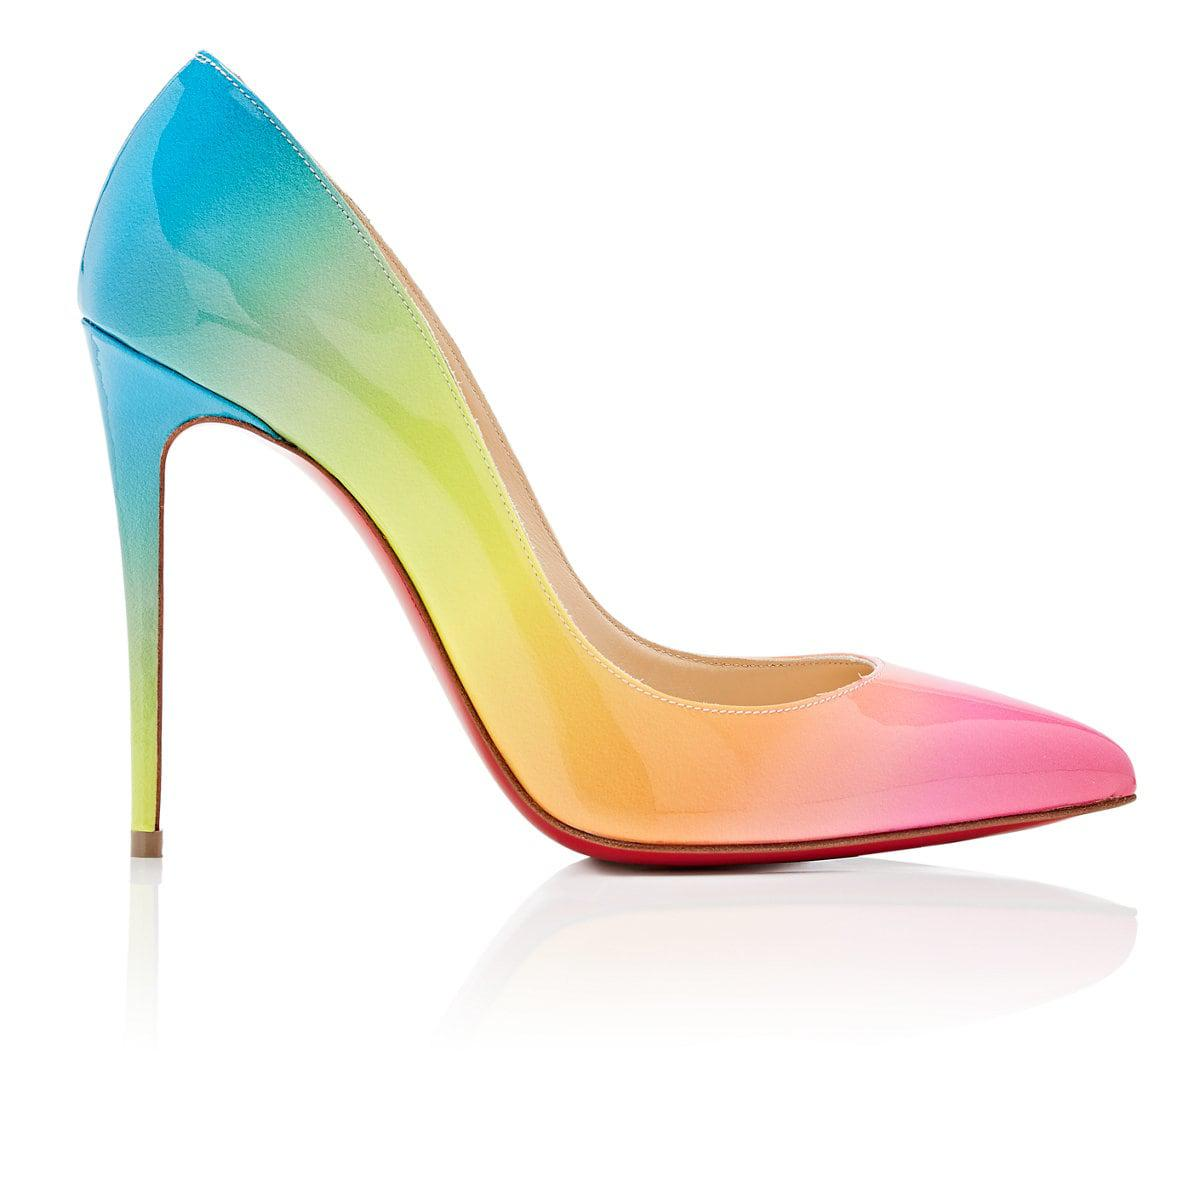 e7836d79efd Gallery. Previously sold at  Barneys New York · Women s Christian Louboutin  Pigalle ...